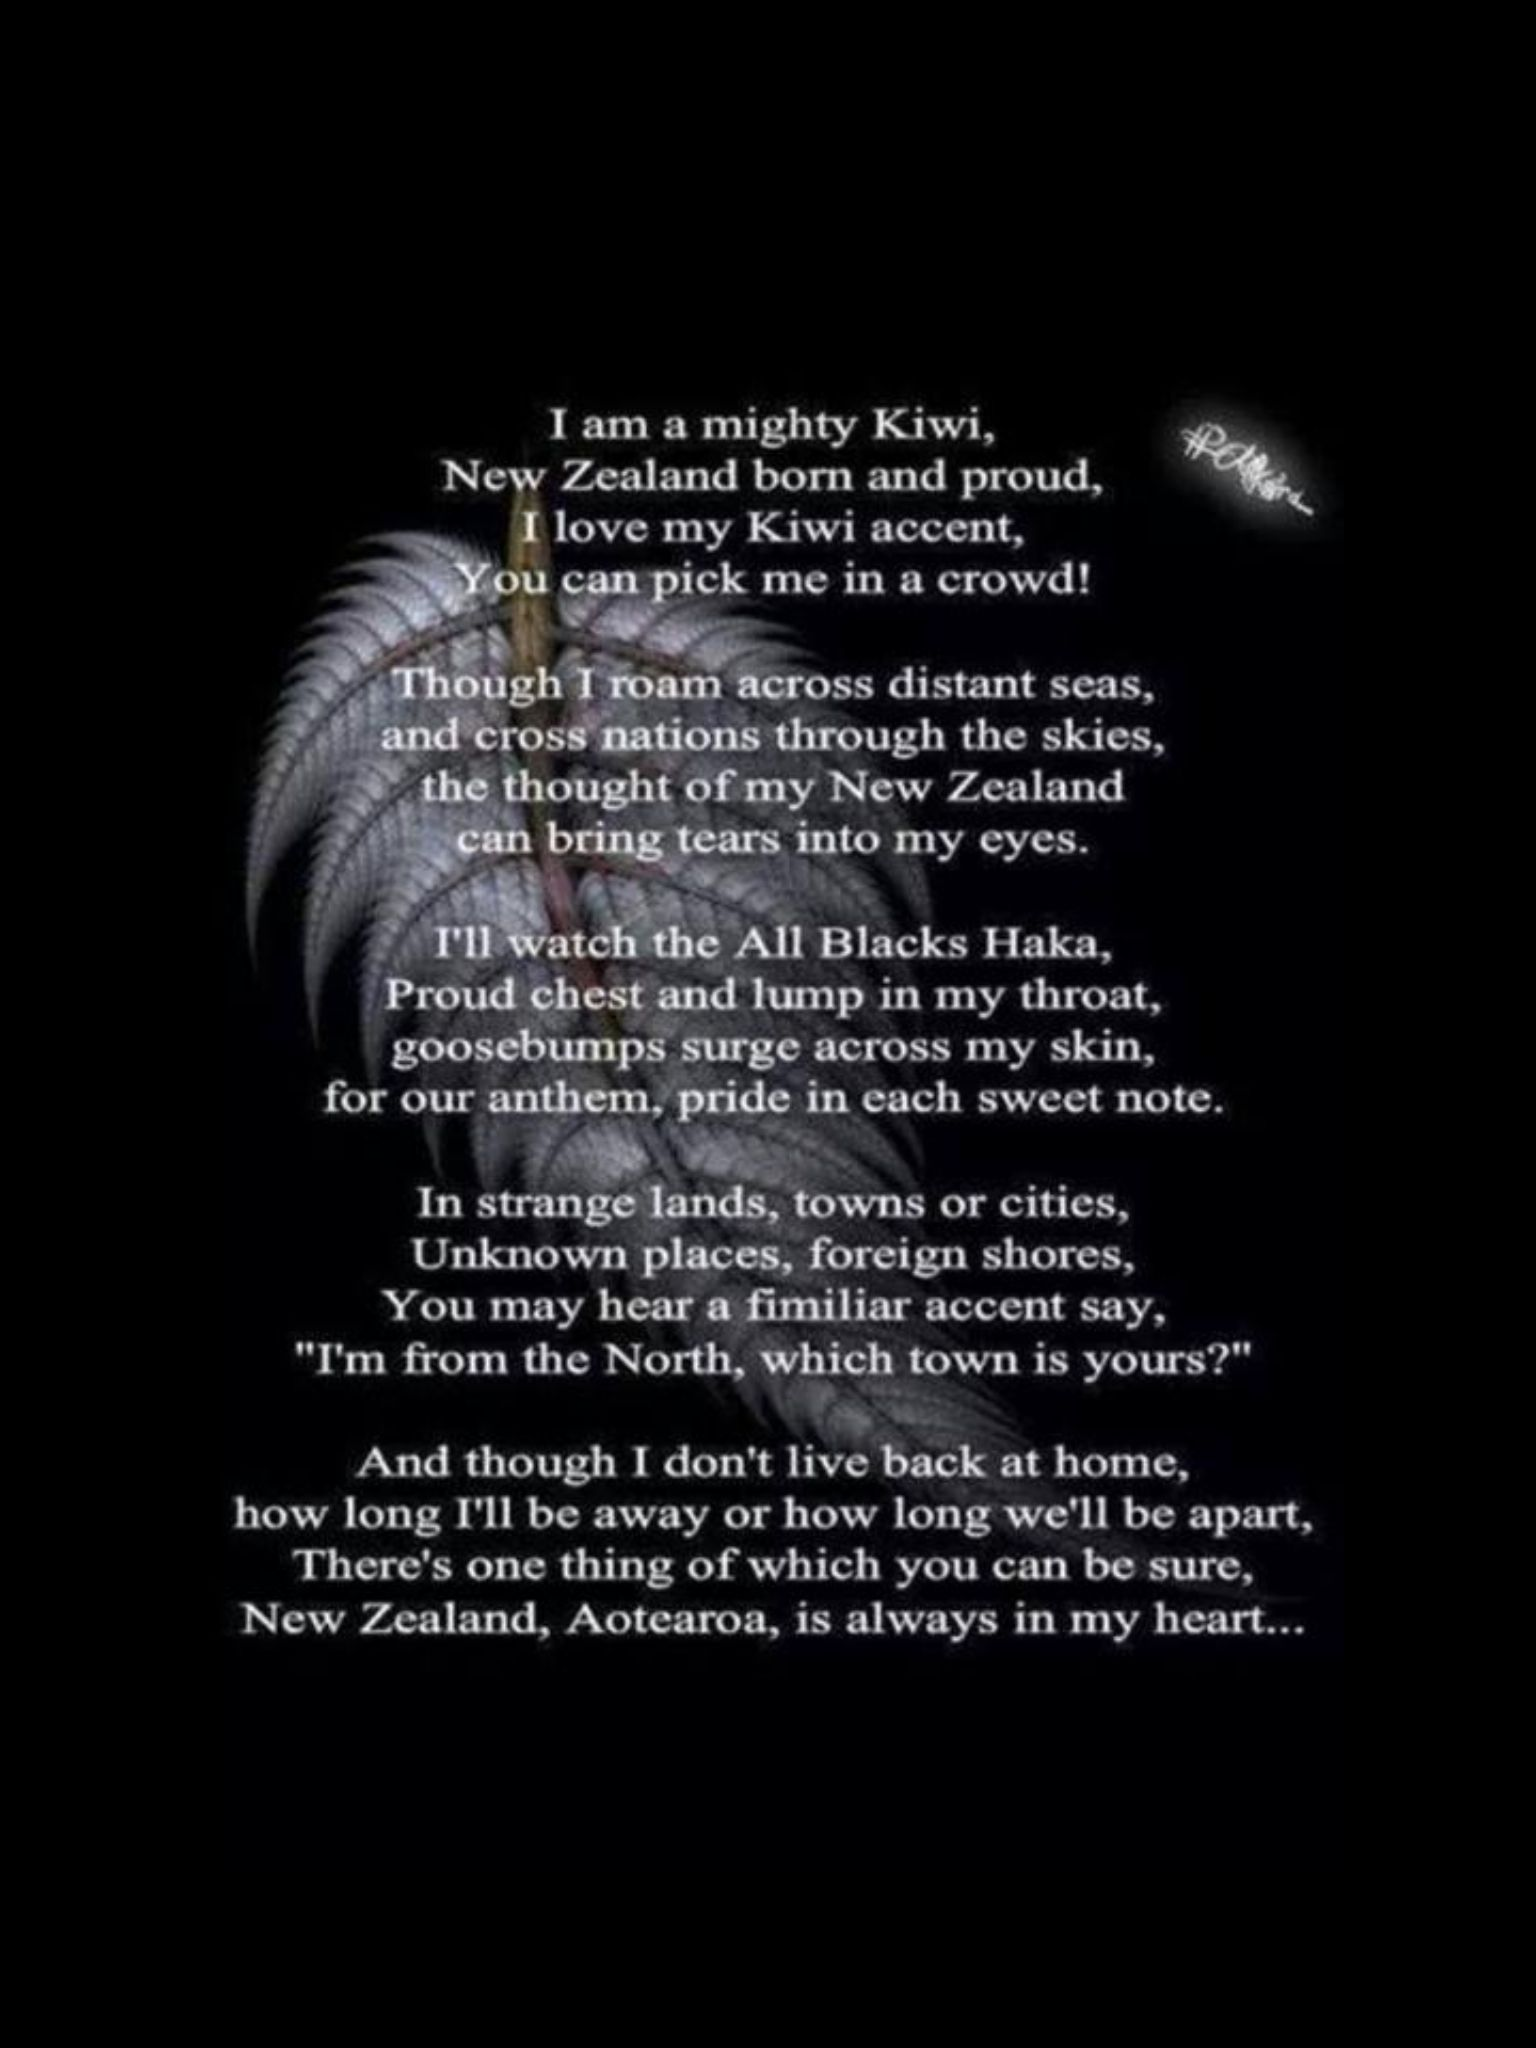 New Zealand will always be home :)